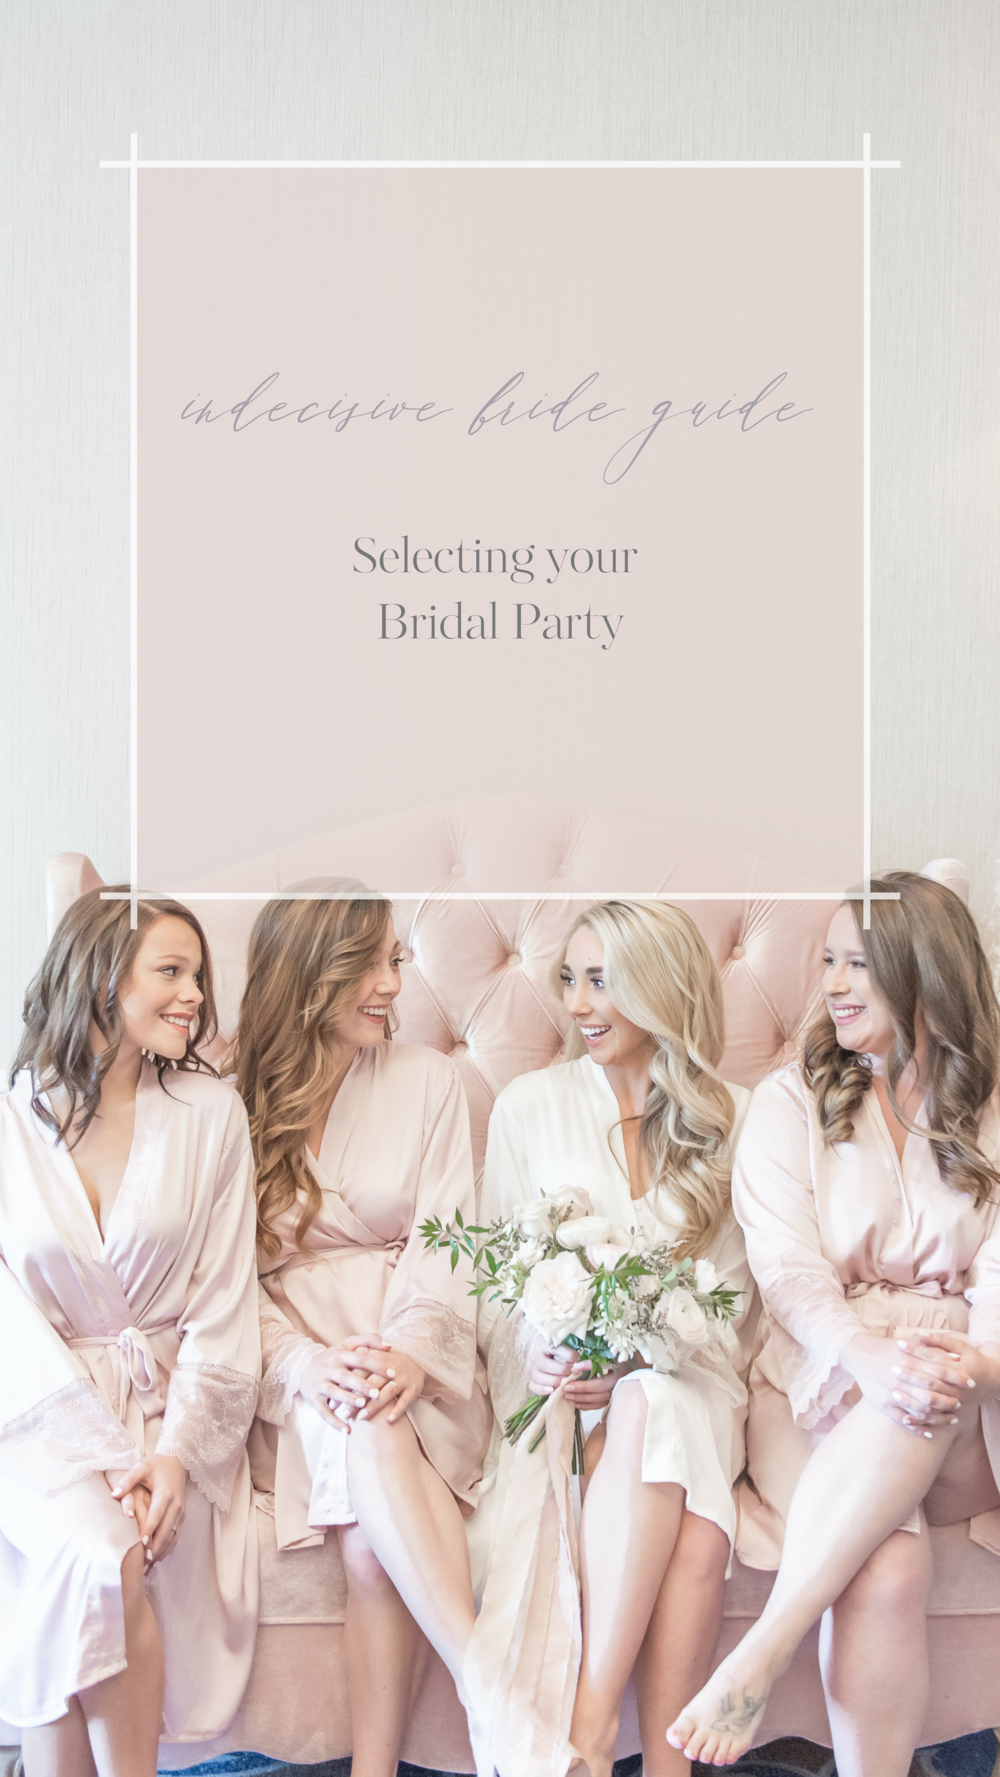 IBG Selecting your Bridal Party.png